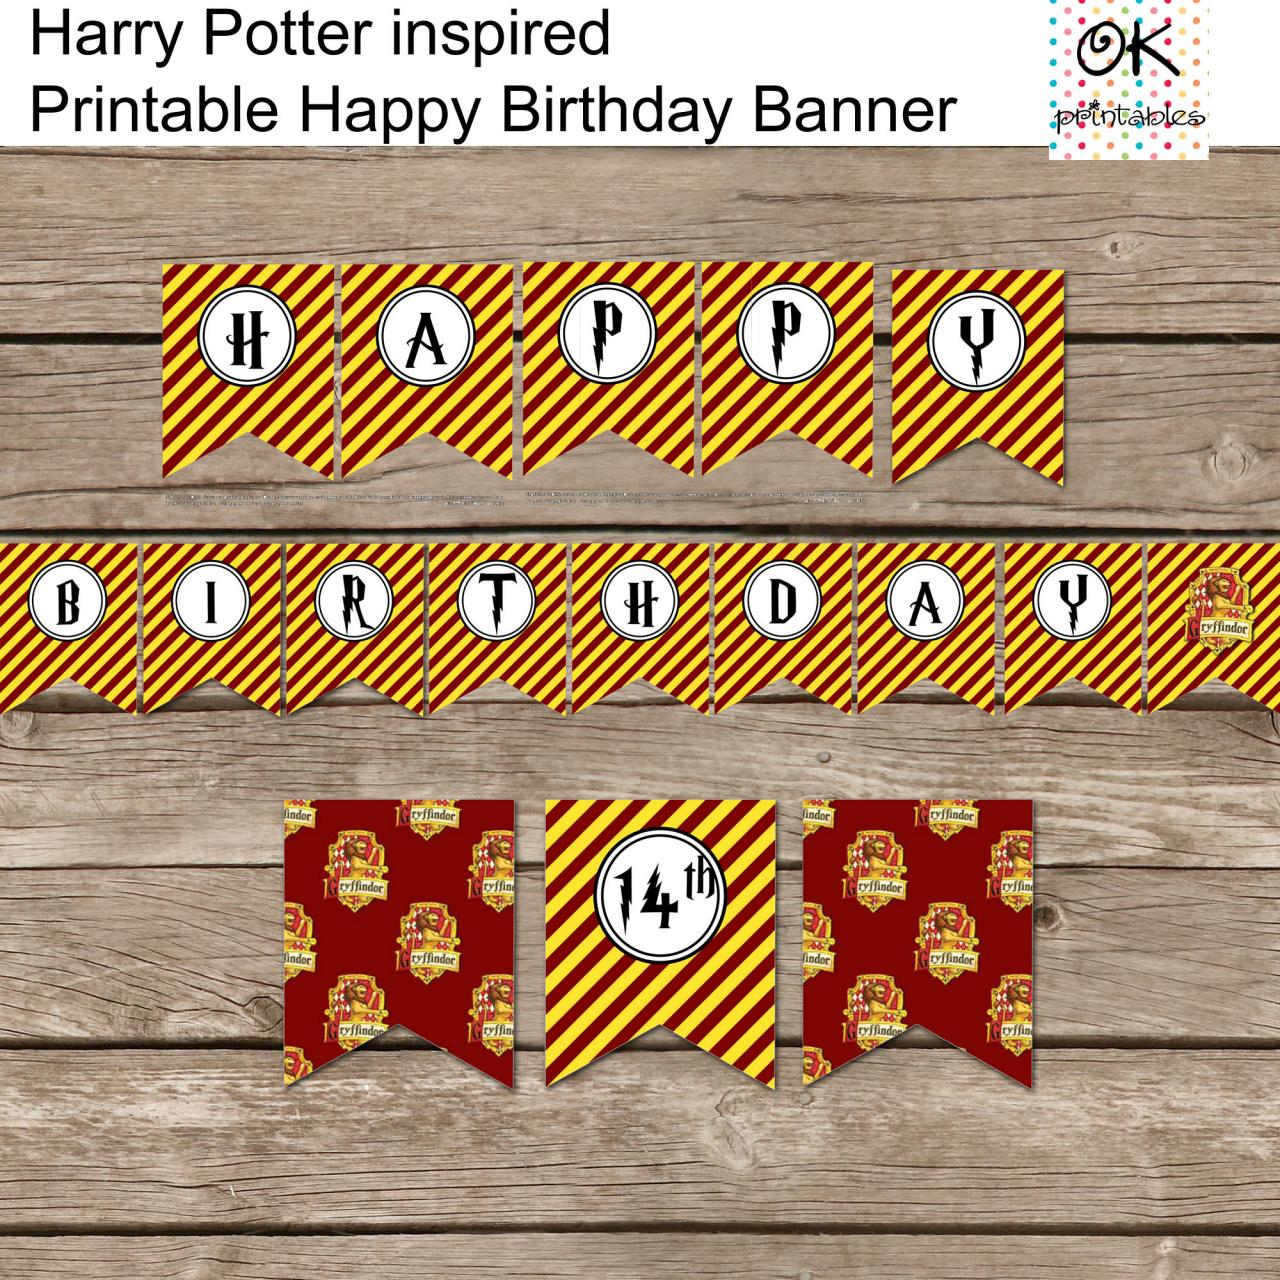 Harry Potter Inspired Happy Birthday Banner DIY Harry Potter